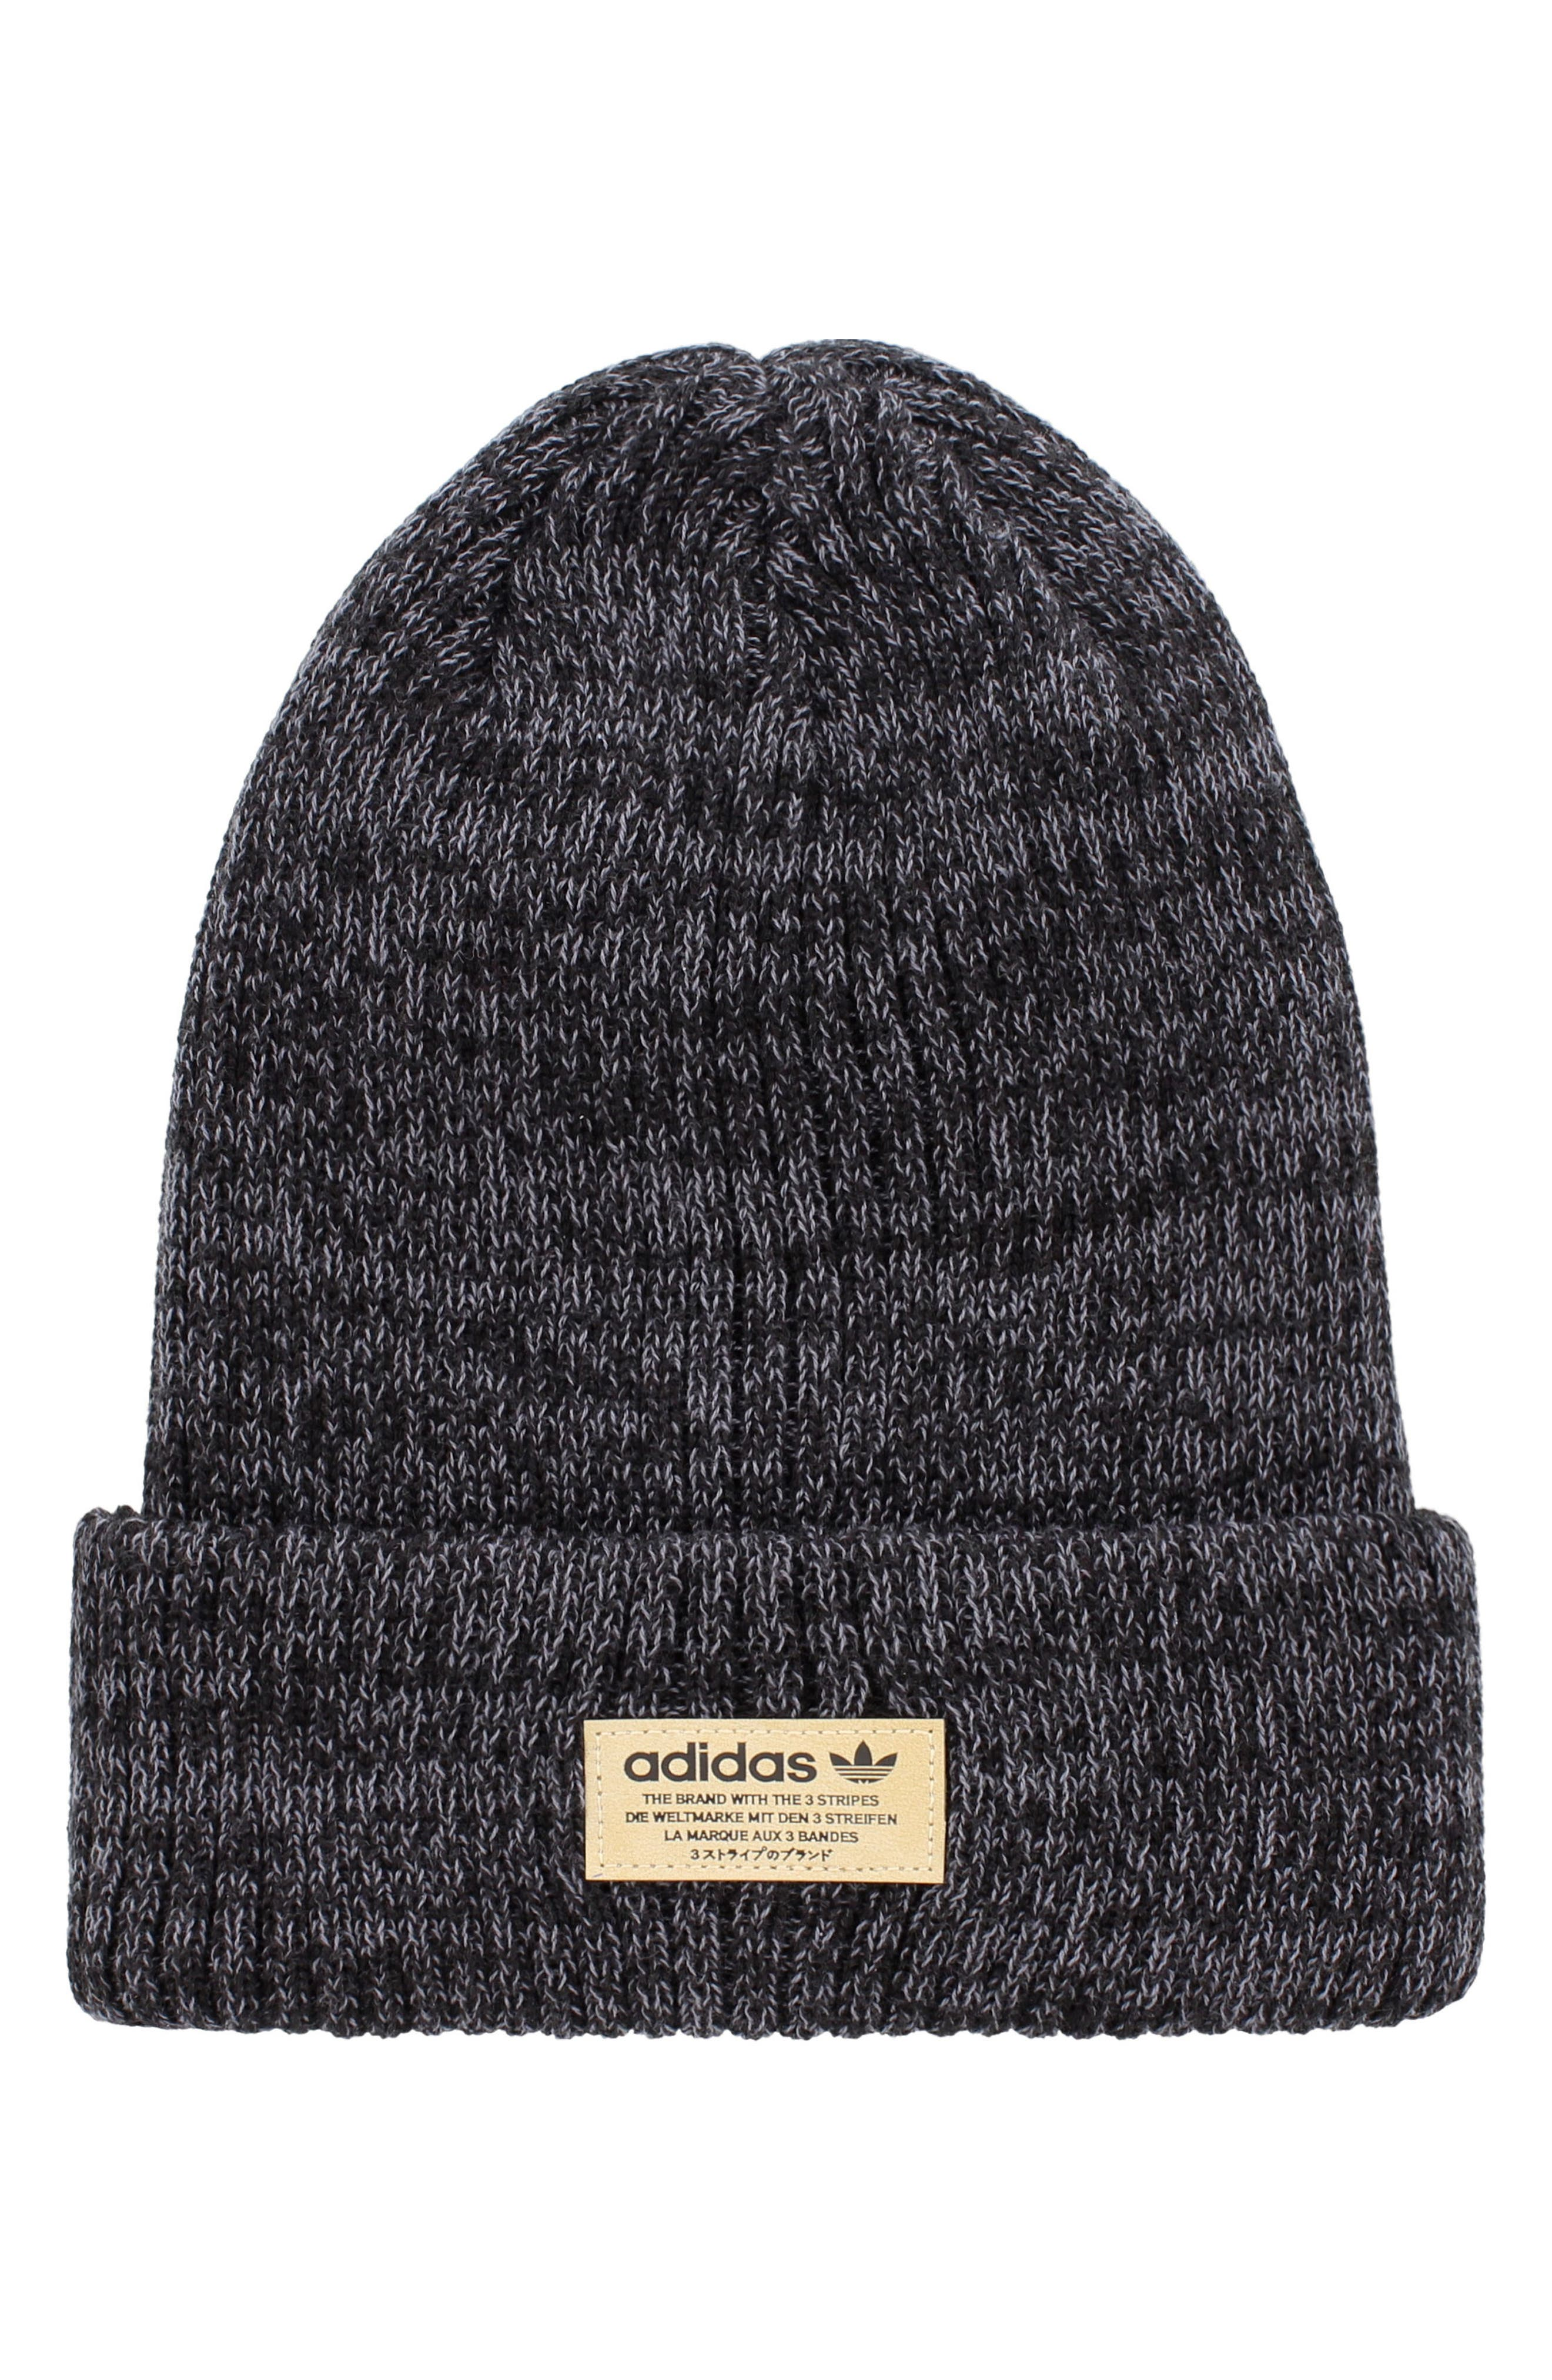 NMD Knit Cap,                         Main,                         color, 001